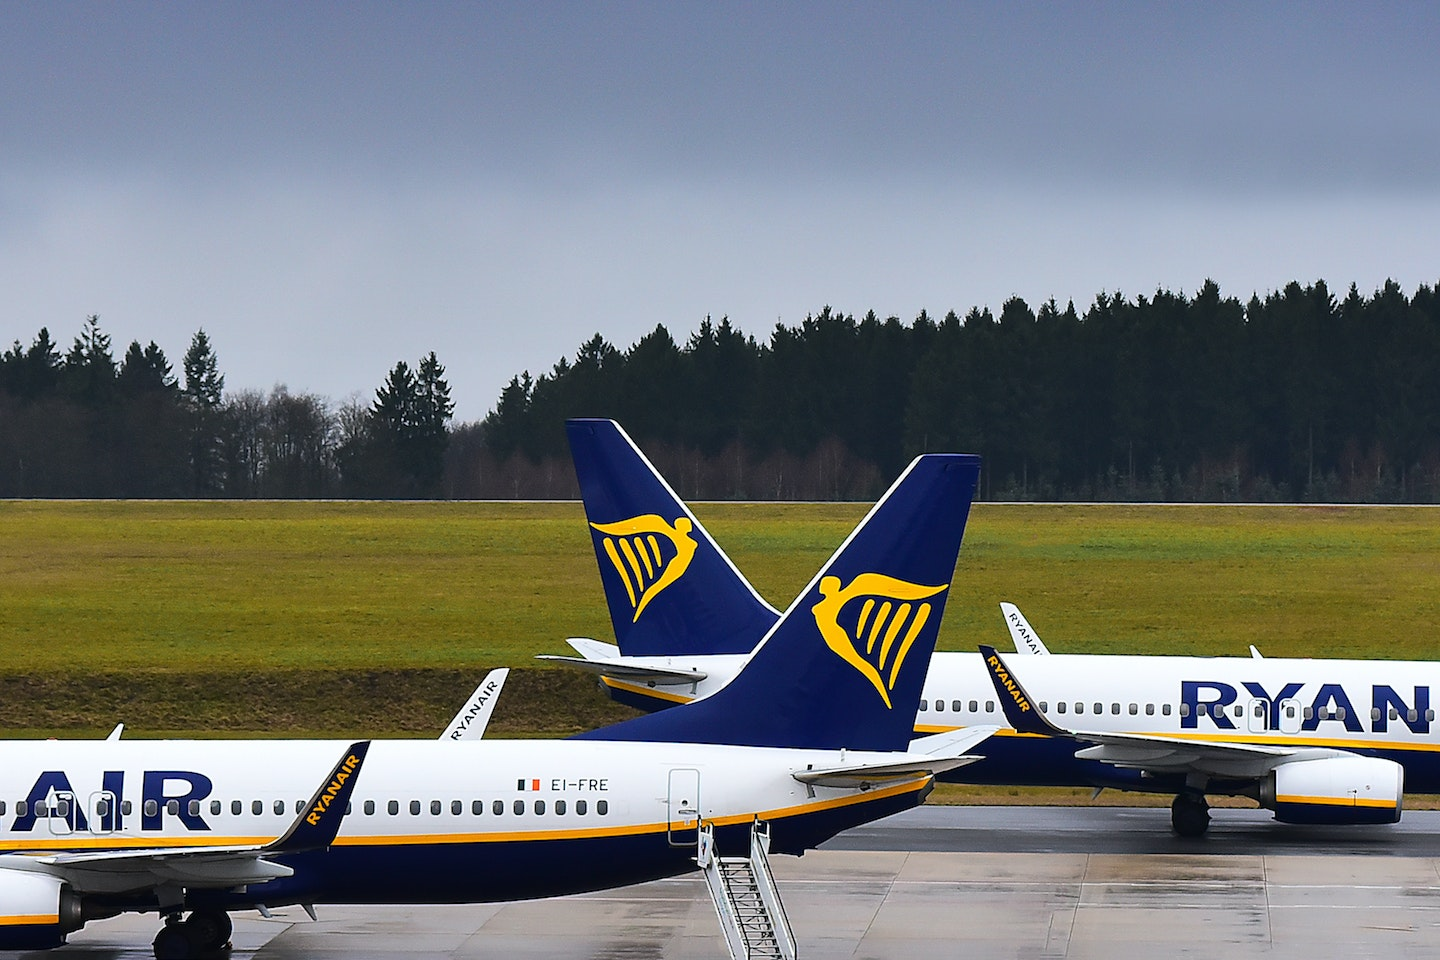 Ryanair arguably wrote the rules of the modern low-cost, low-fare airline.